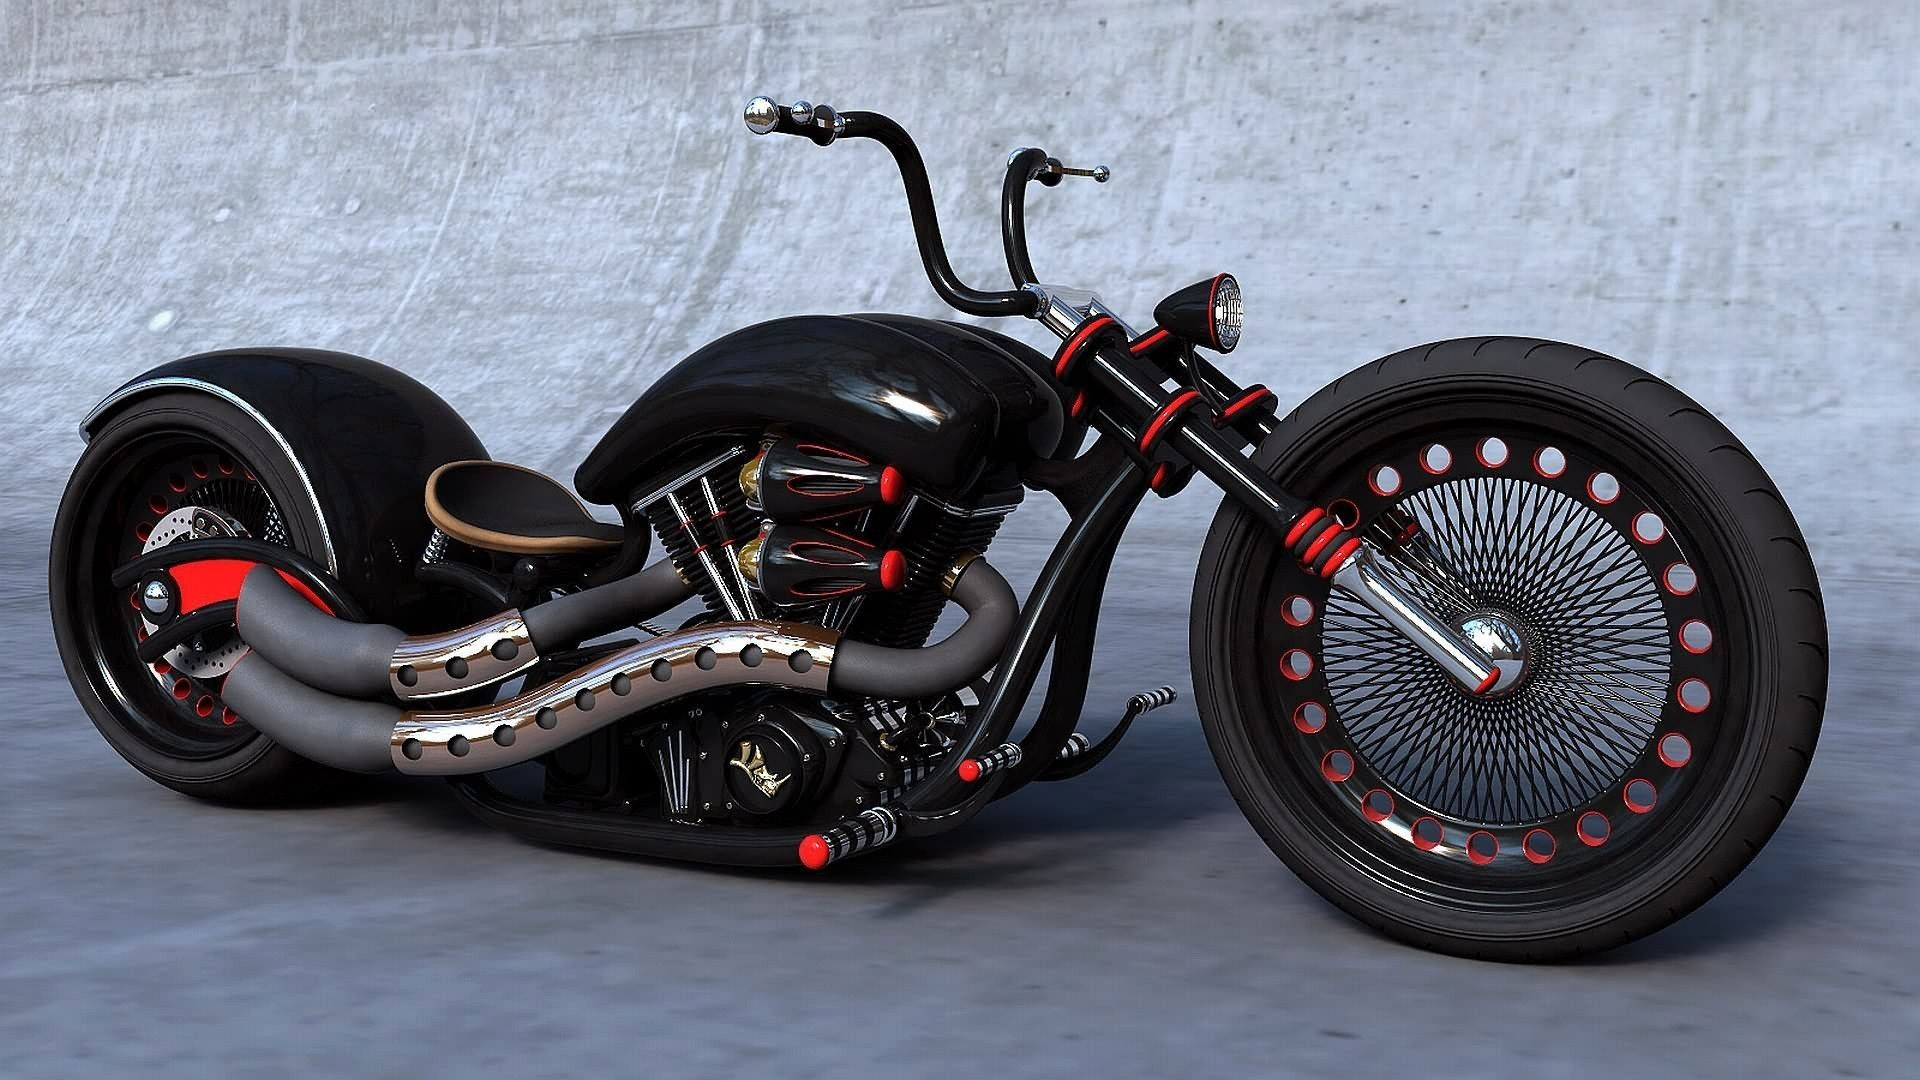 1920x1080 Harley Davidson Chopper Wallpaper Free #tKF